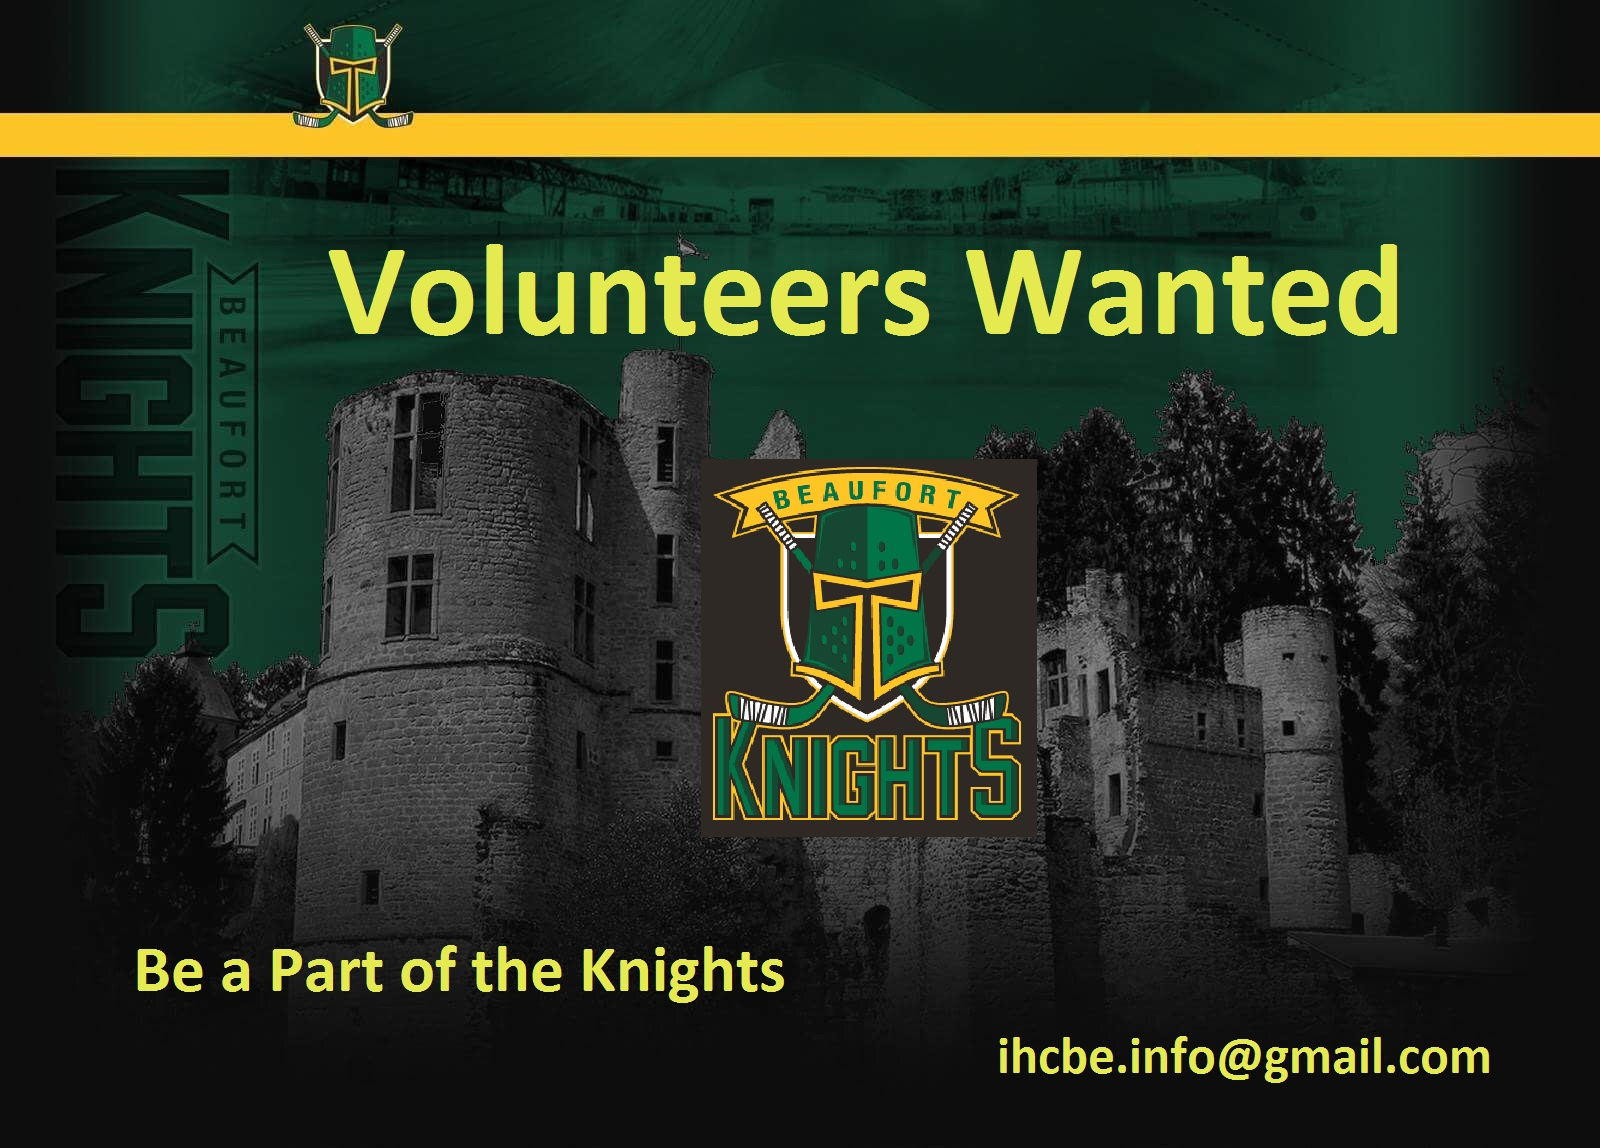 IHCB sicht Benevolen/Volunteers wanted